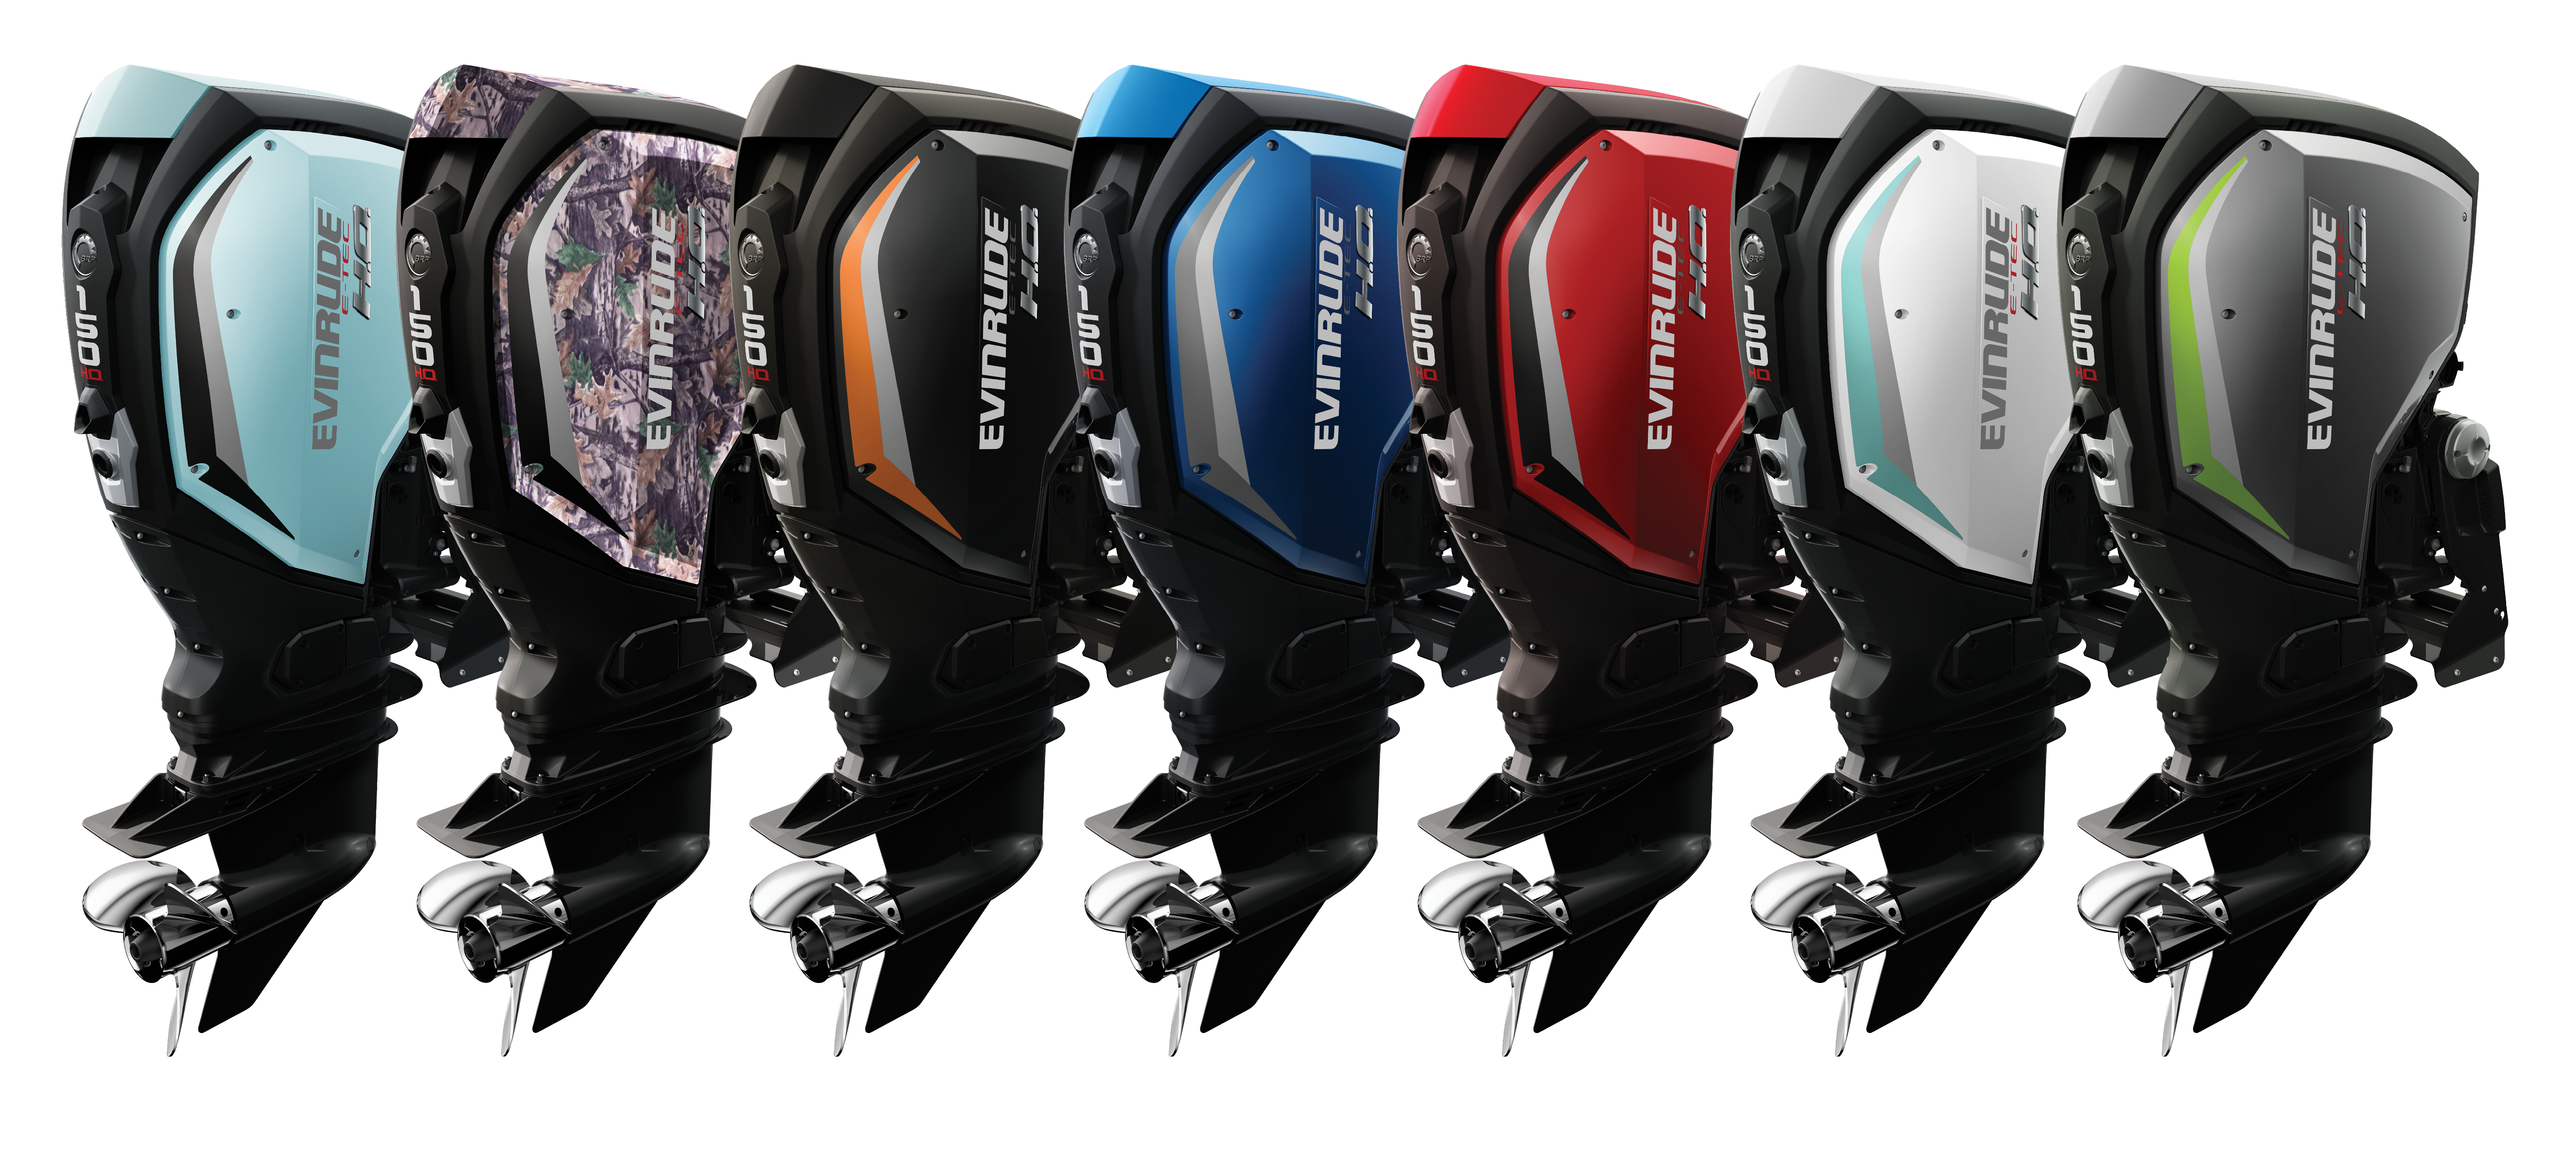 Evinrude G2 engines - 6 colors